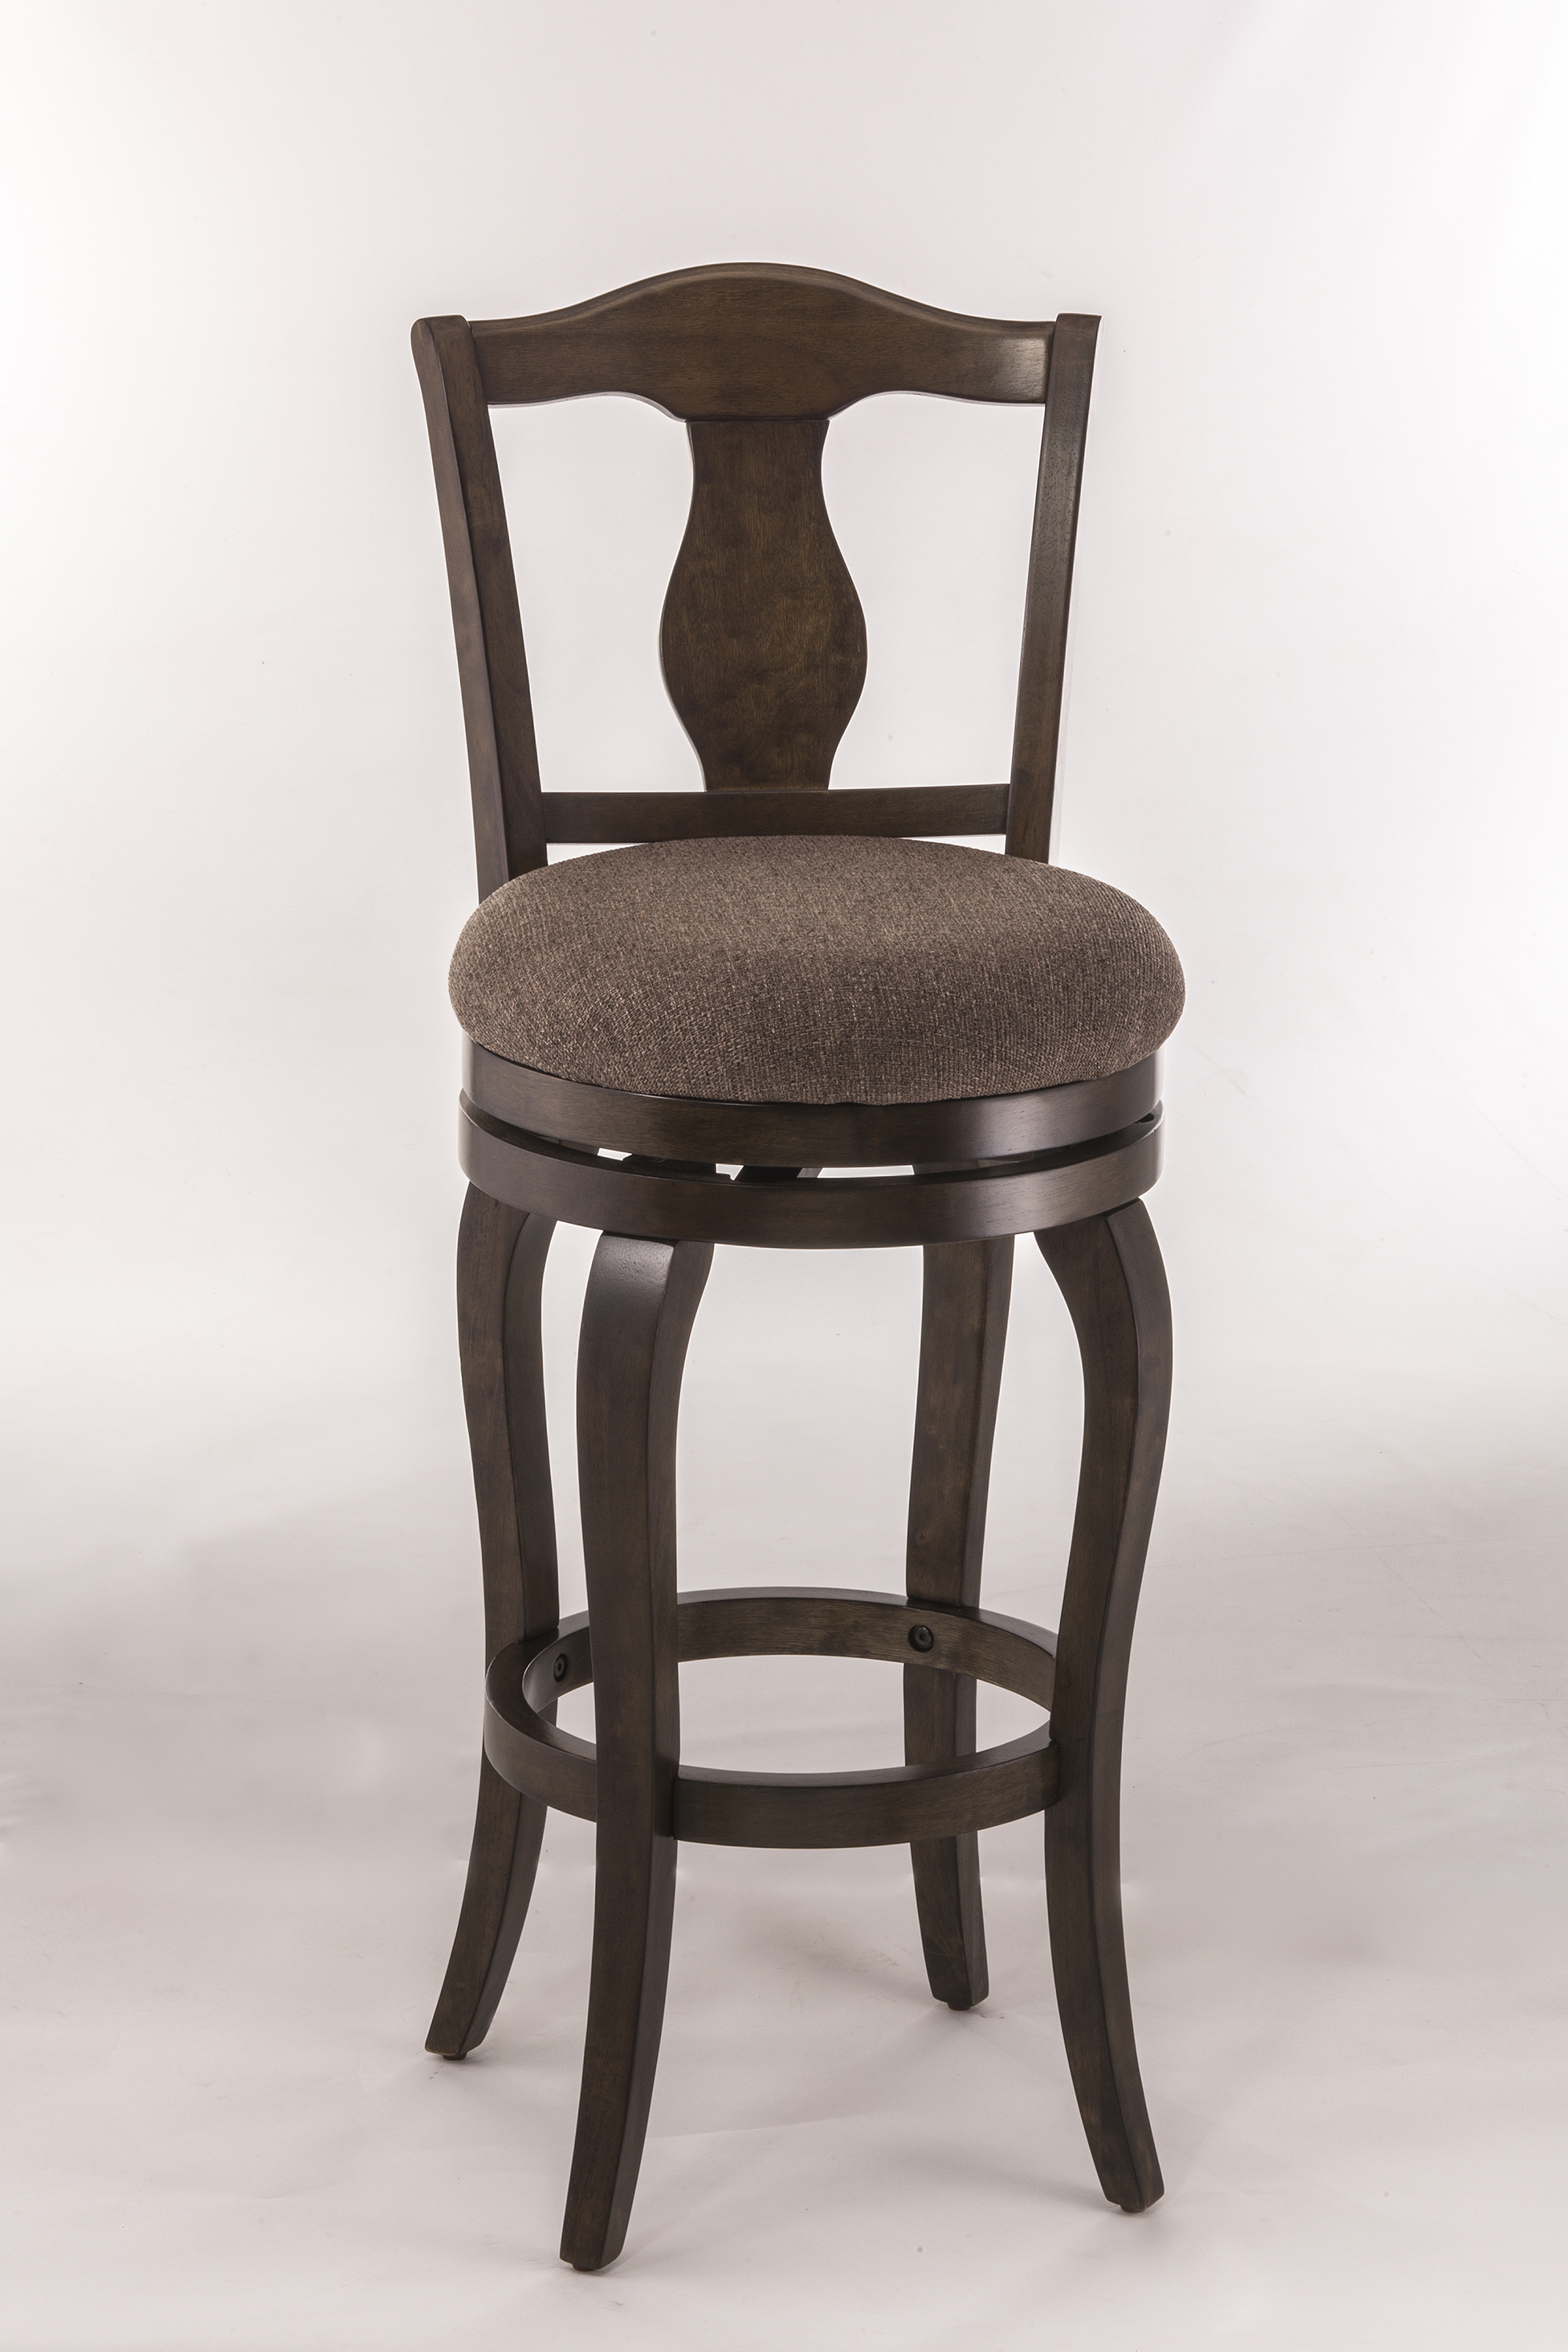 Hillsdale Wood Stools Upholstered Swivel Counter Height